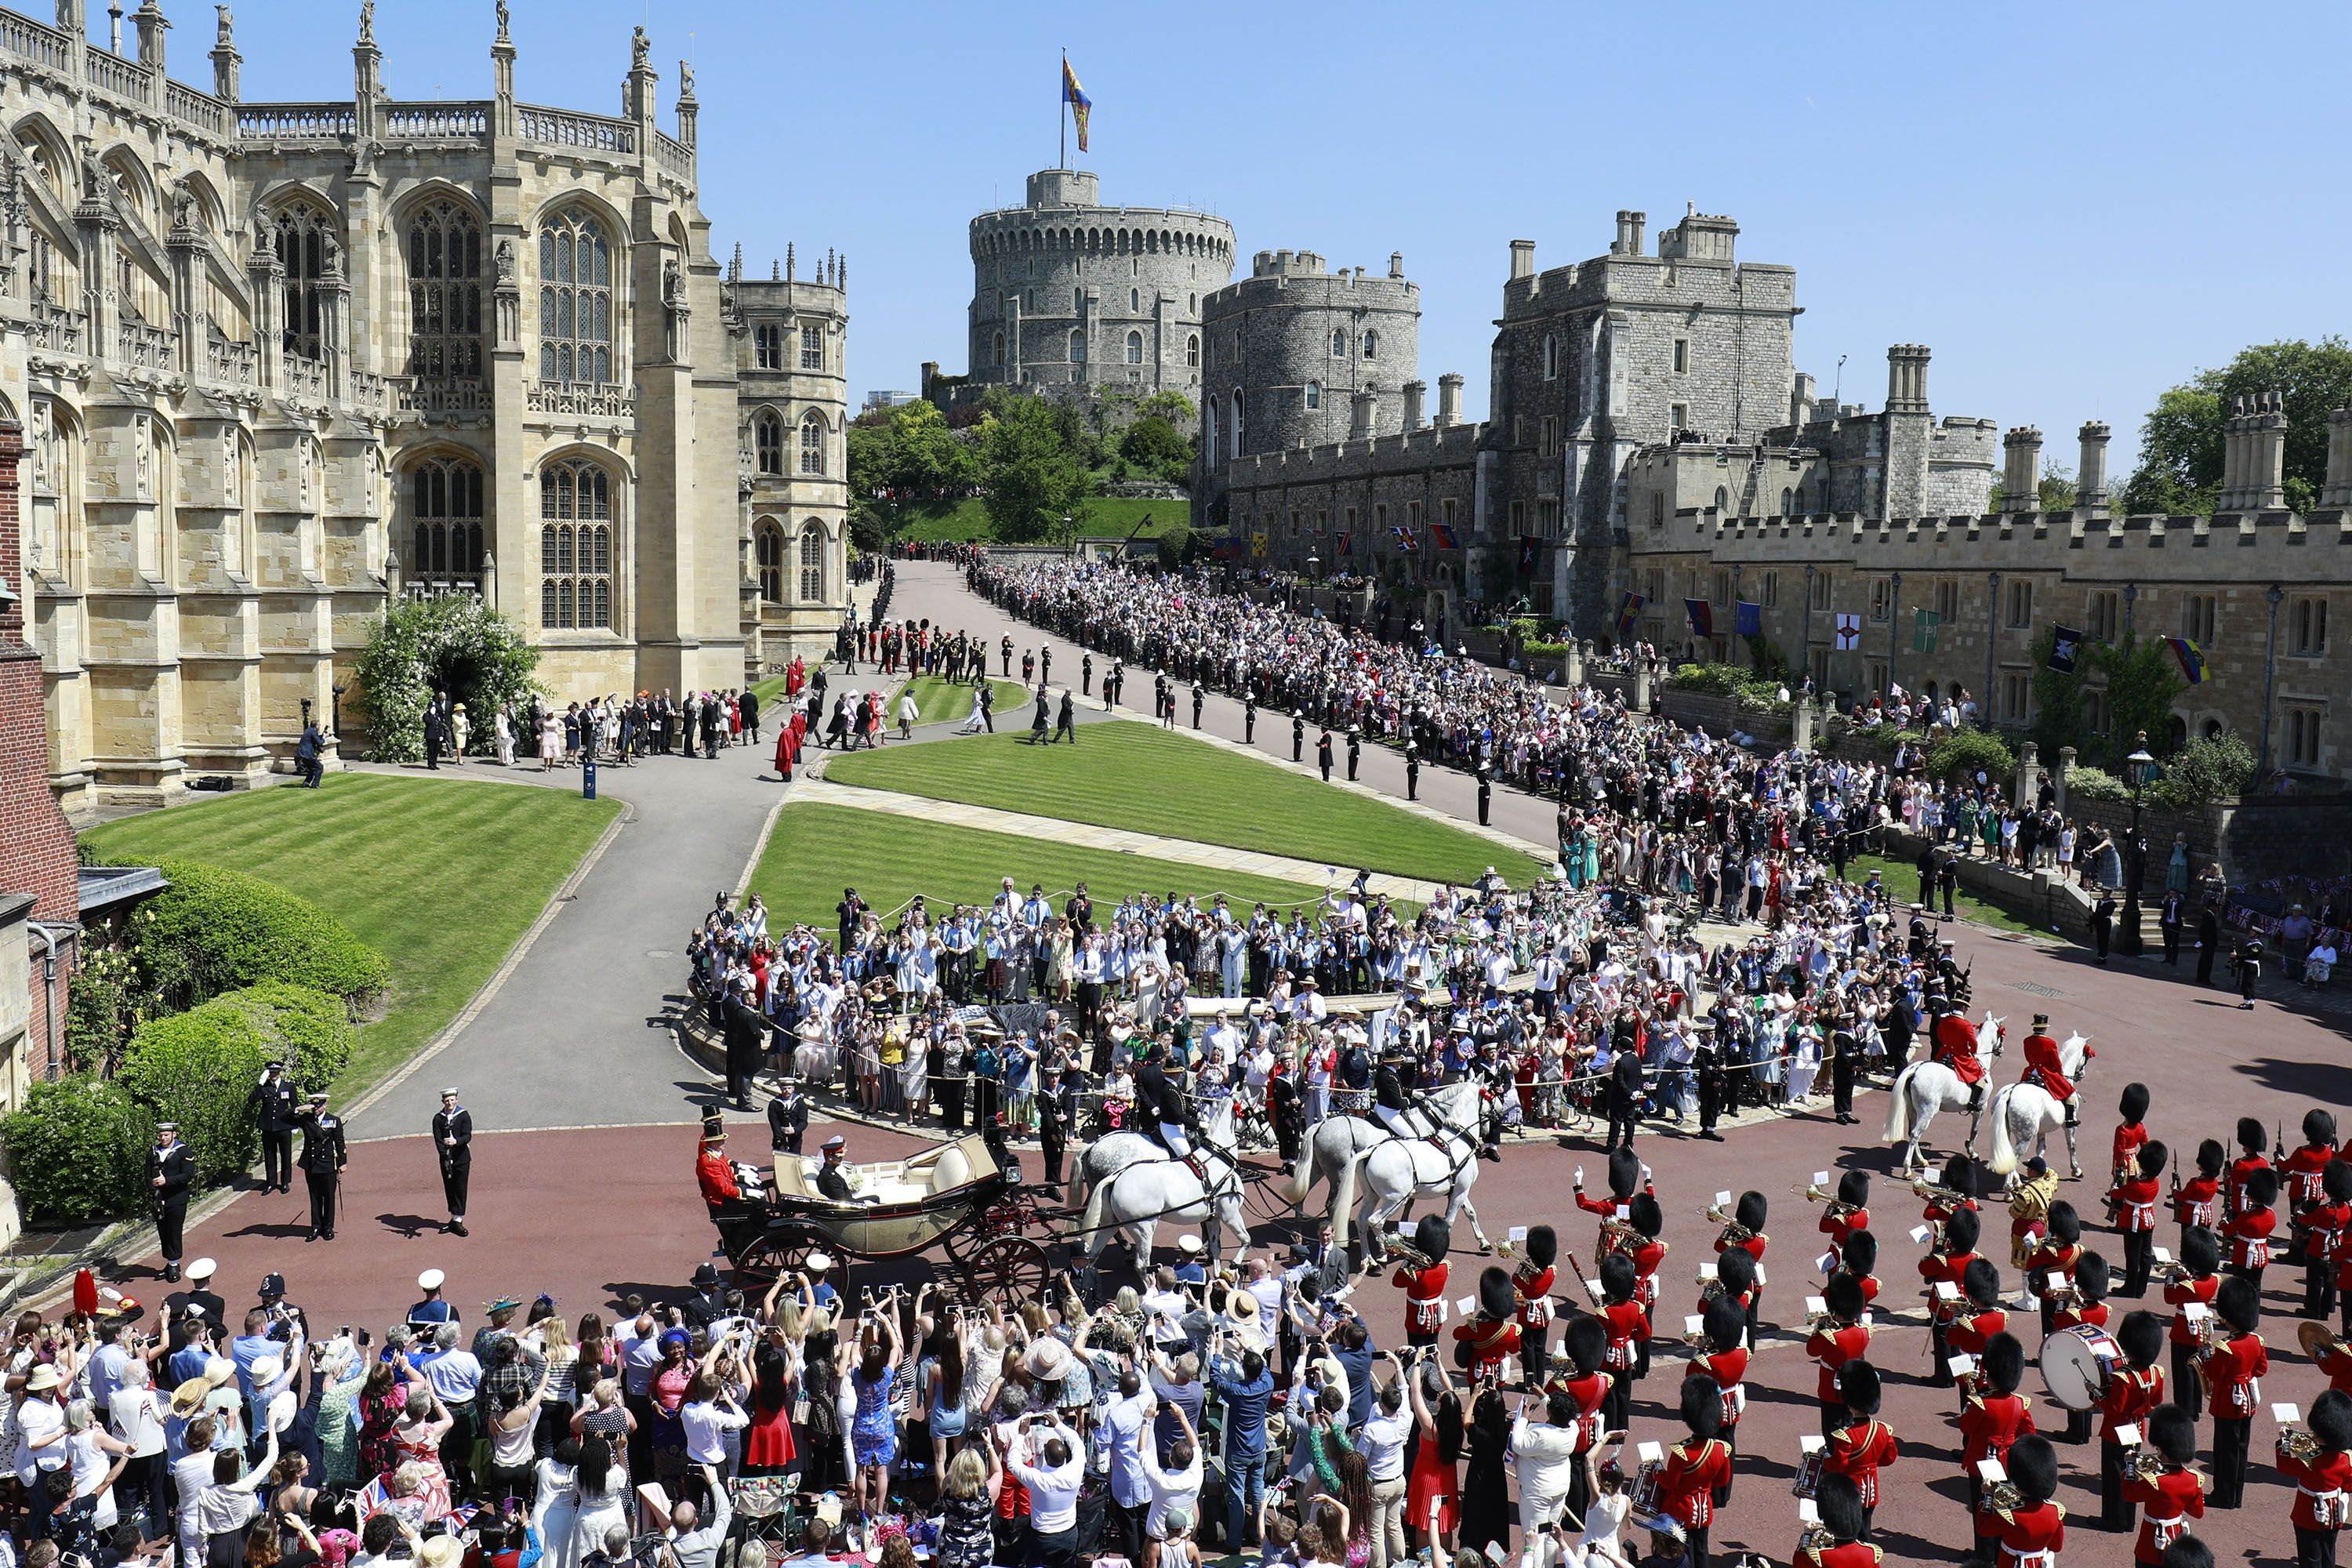 https://hips.hearstapps.com/hmg-prod.s3.amazonaws.com/images/royal-wedding-procession-1526734486.jpg